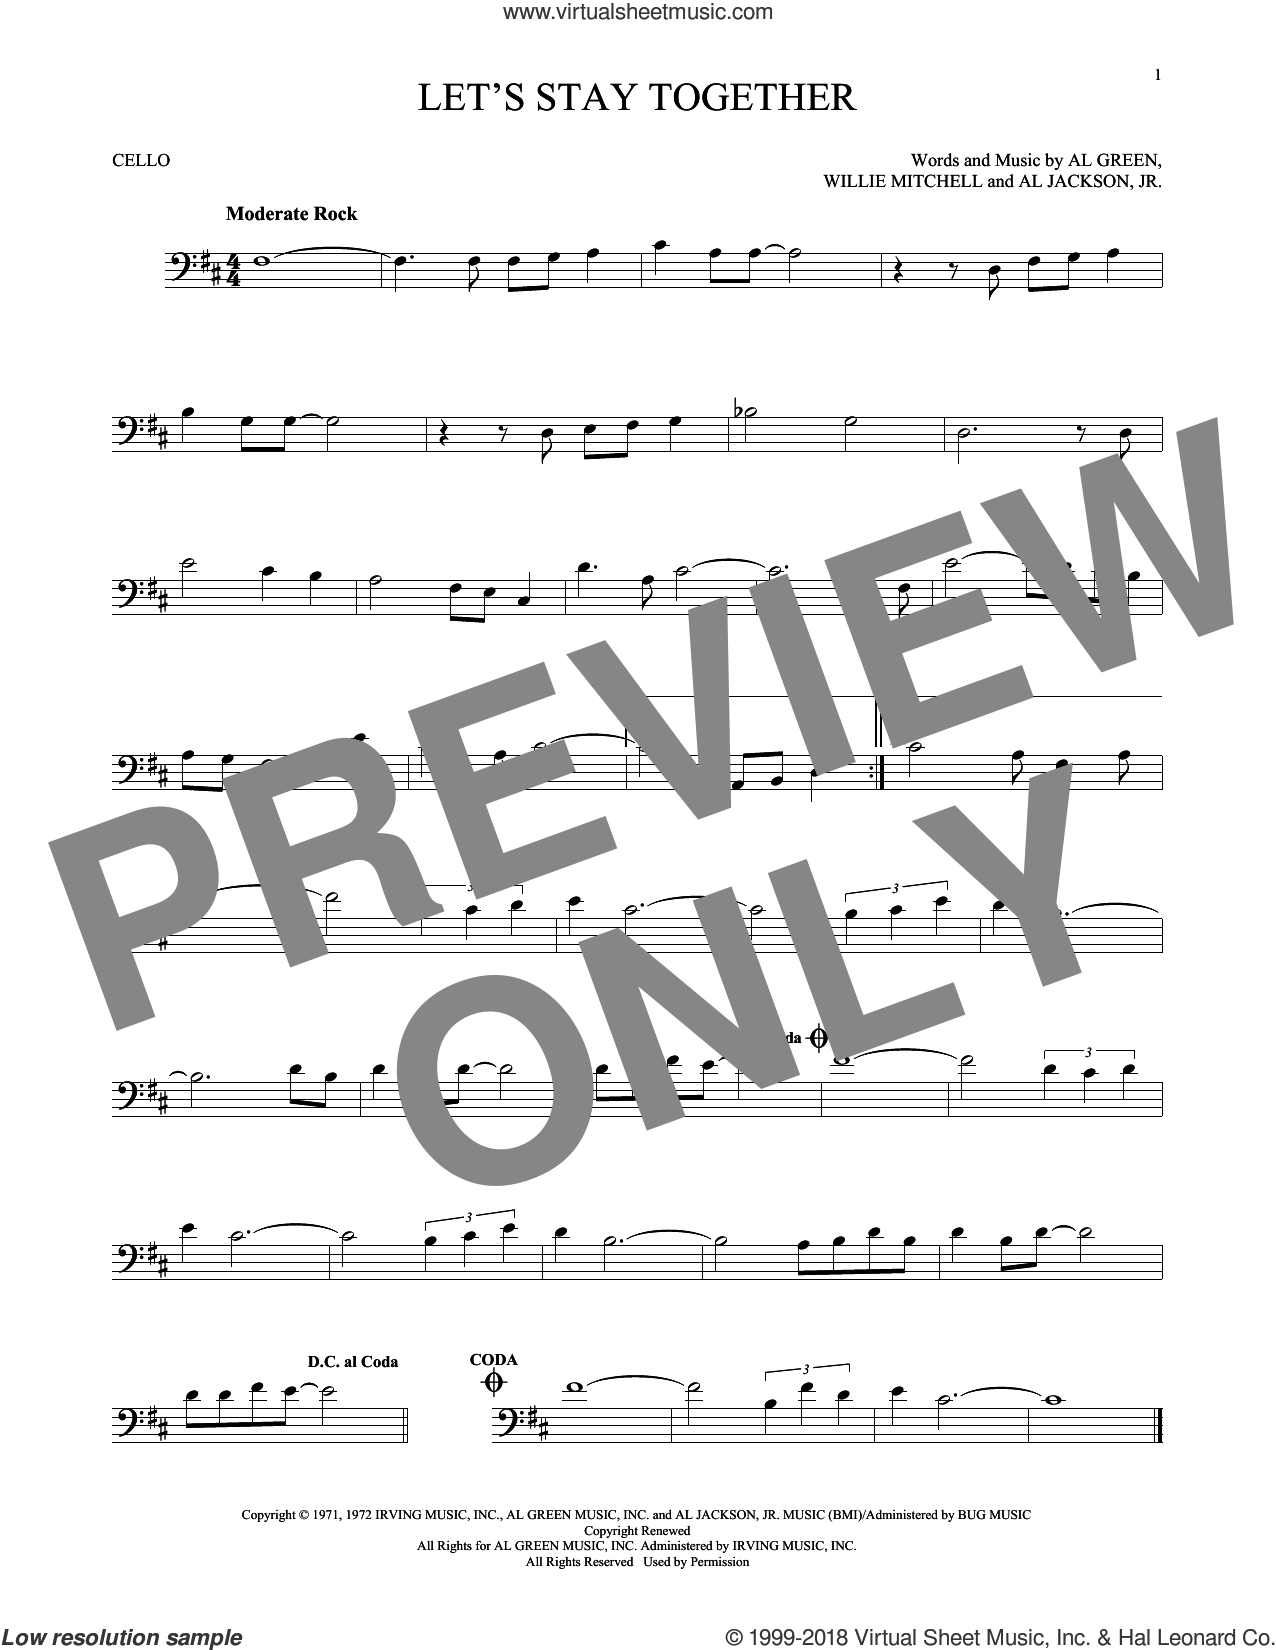 Let's Stay Together sheet music for cello solo by Al Green and Willie Mitchell, intermediate cello. Score Image Preview.